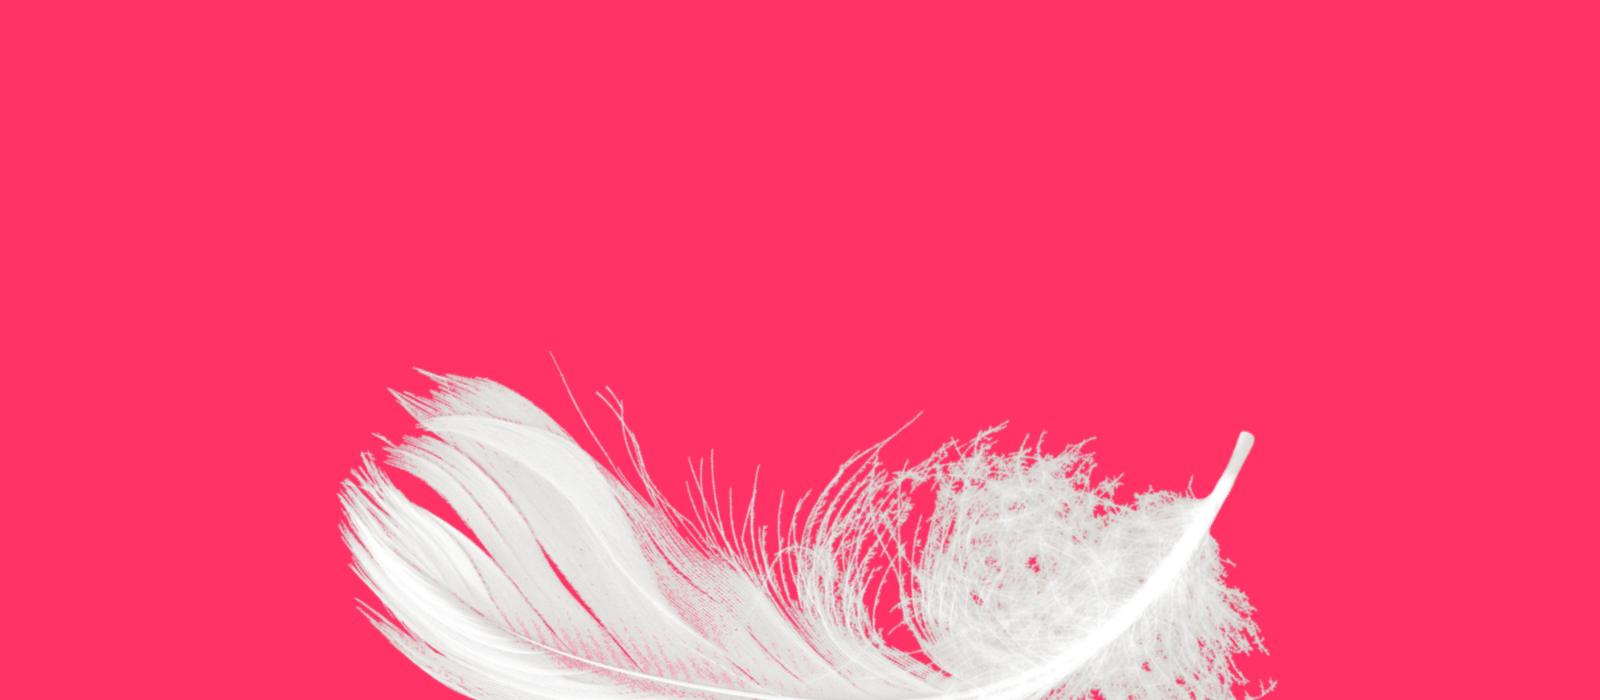 This is a photo of a white feather.